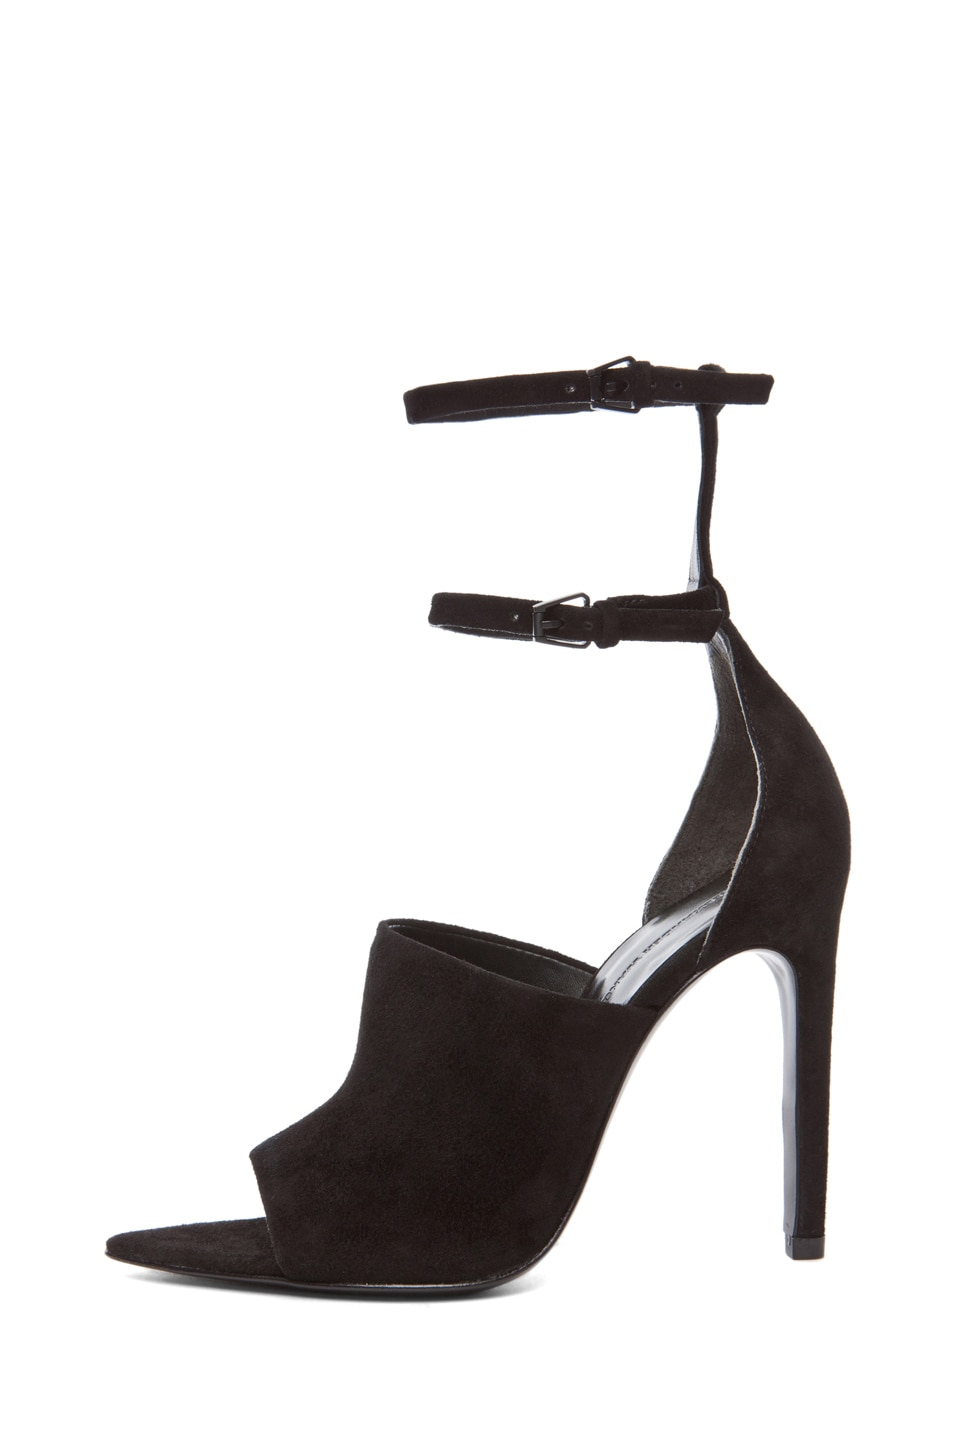 Image 1 of Alexander Wang Nikola Mule Suede Heel in Black